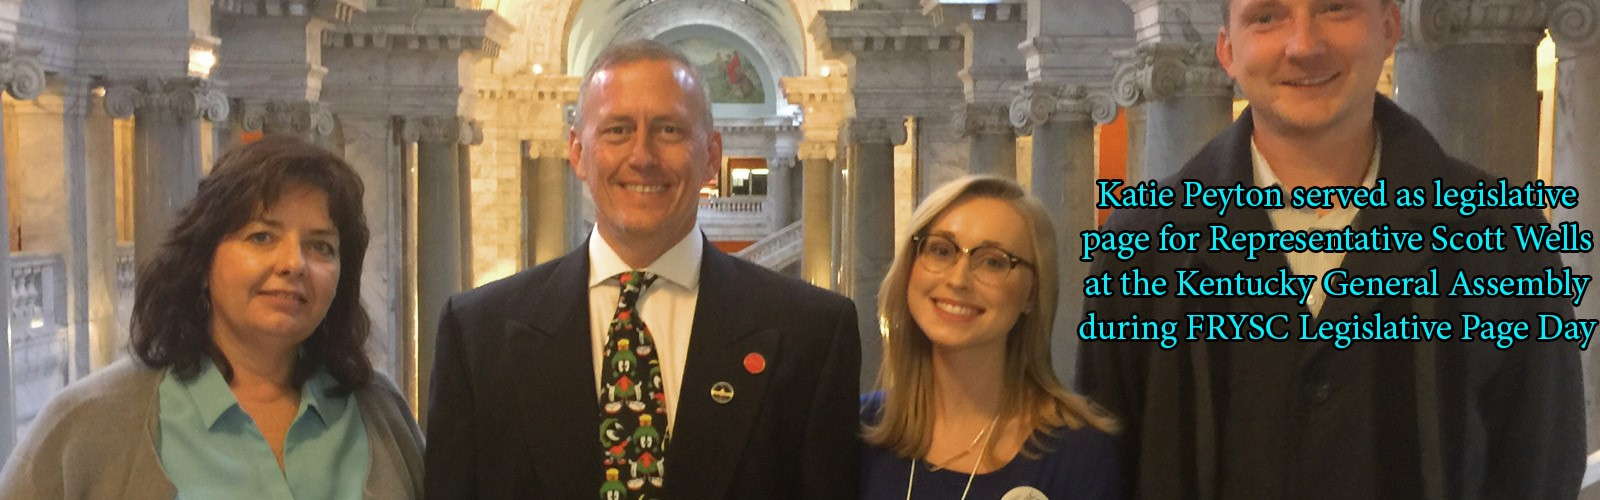 Katie Peyton served as legislative page for Representative Scott Wells at the Kentucky General Assembly during FRYSC Legislative Page Day